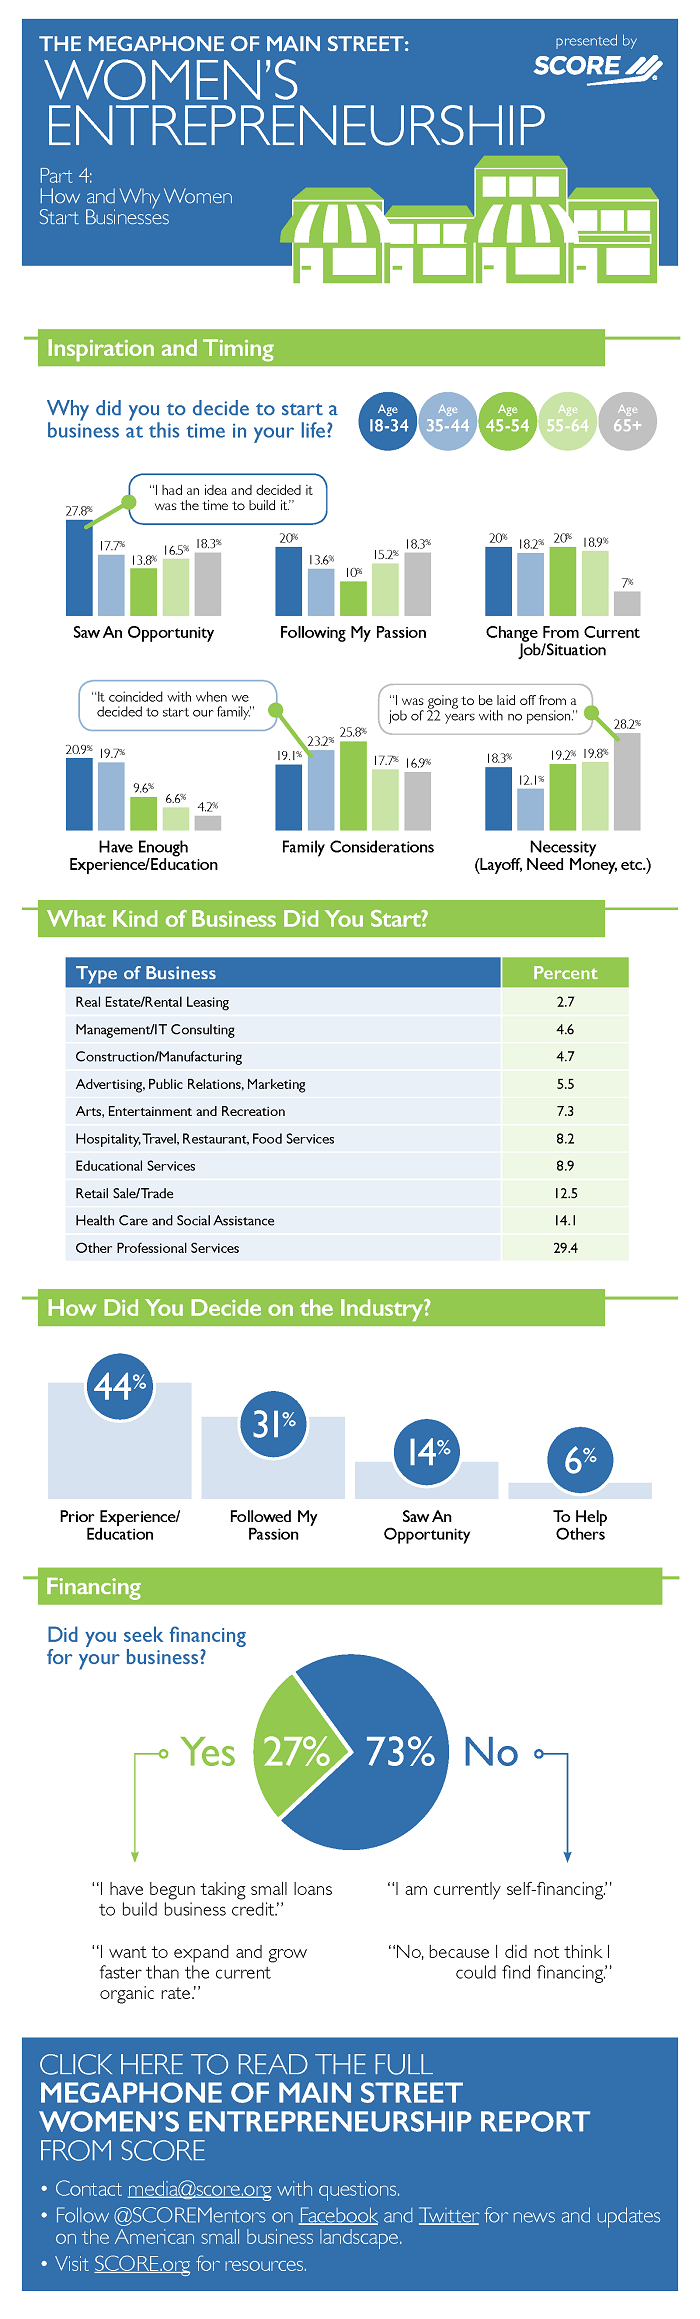 The Megaphone of Main Street: Women's Entrepreneurship, Infographic #4: How and Why Women Start Businesses